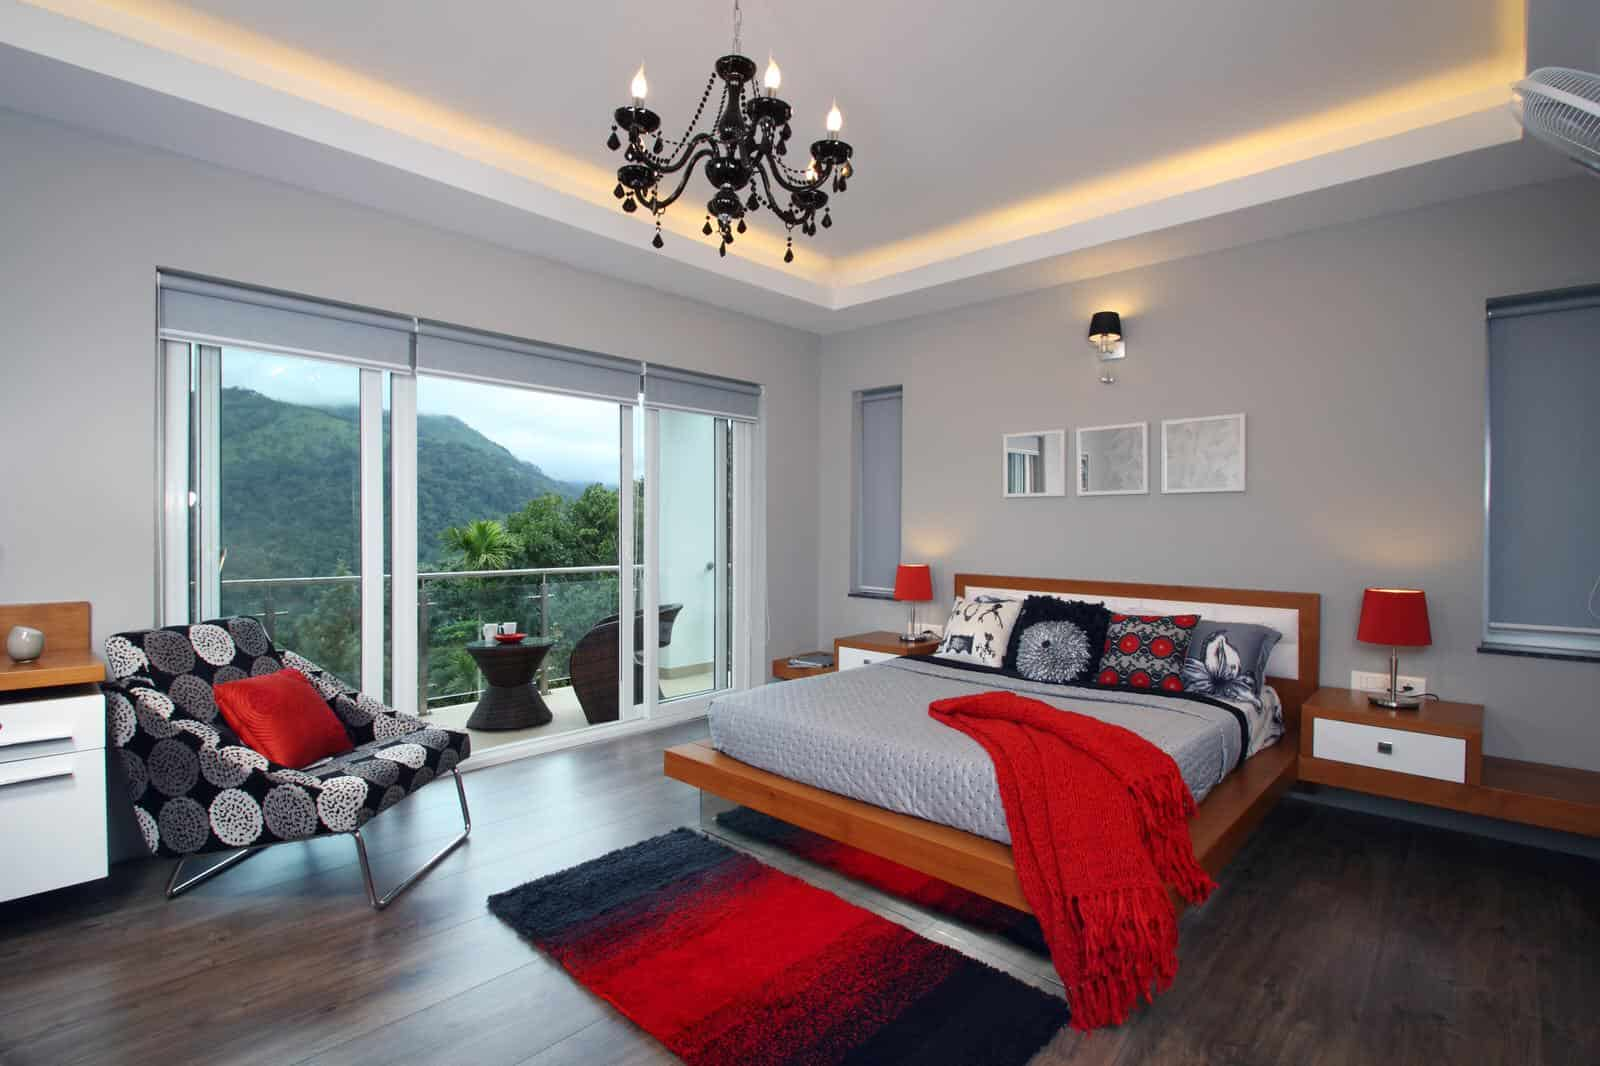 grey bedroom with accentuating red decorations